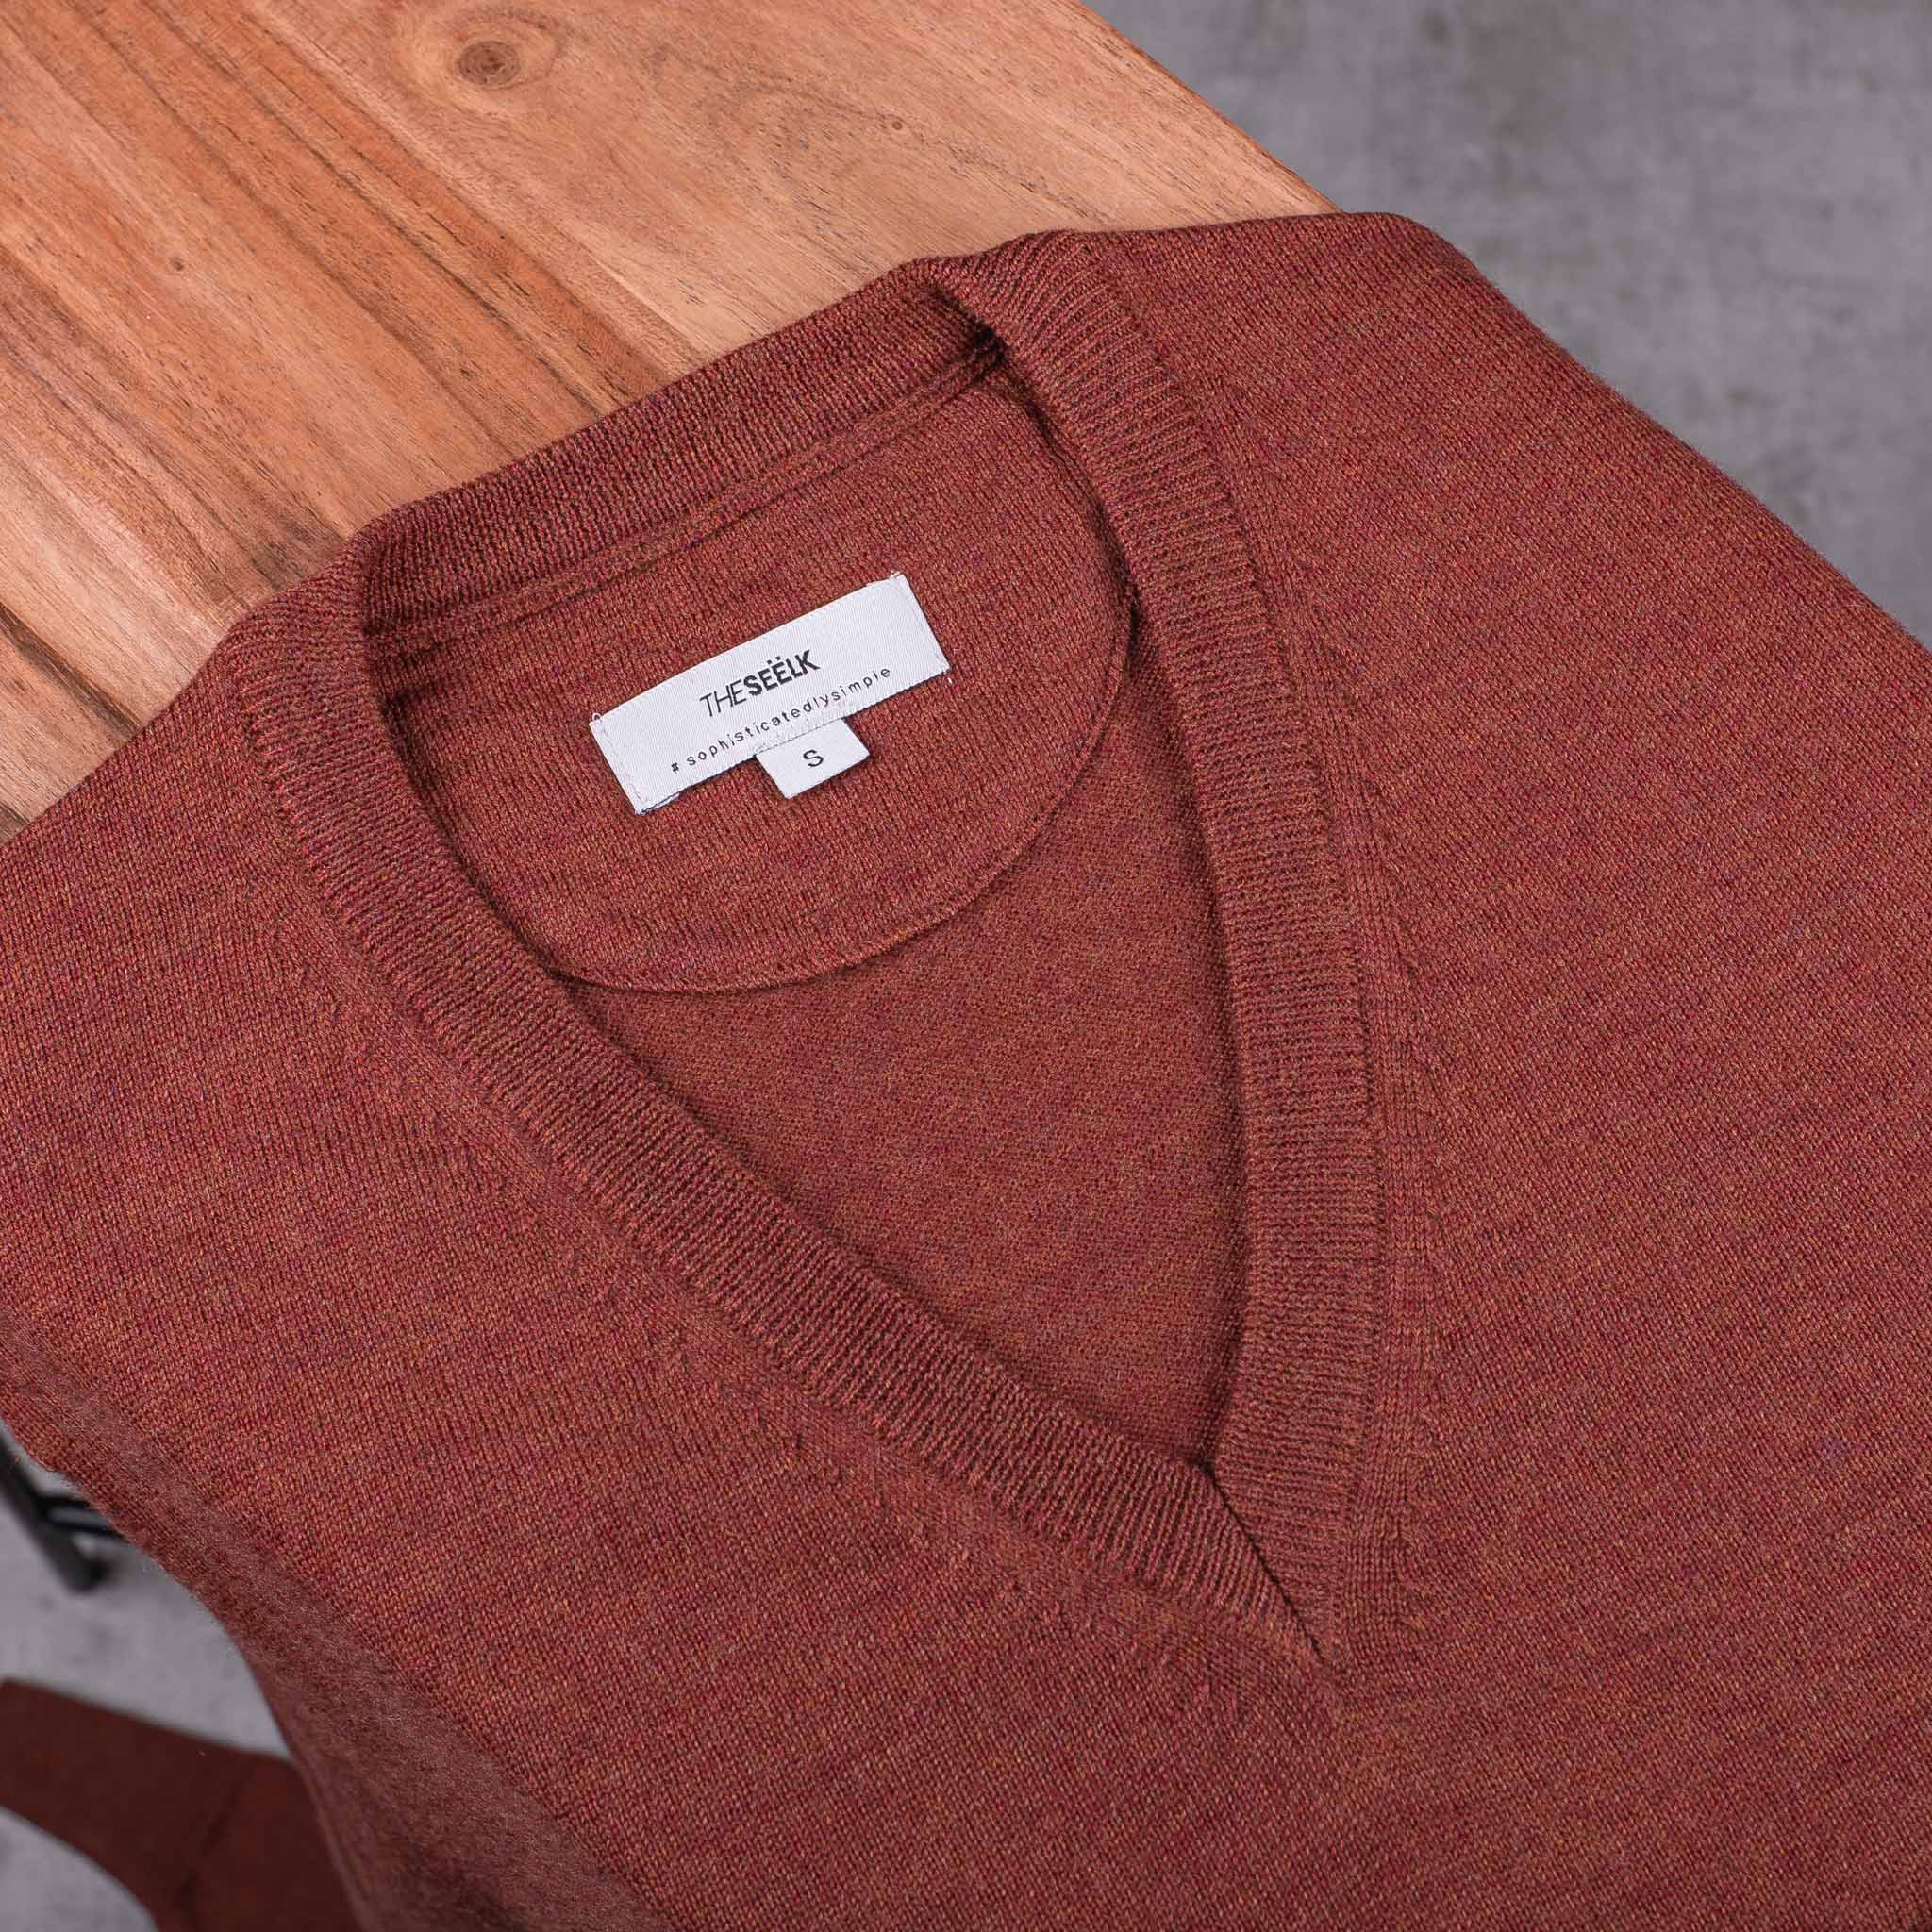 V-NECK-PULLOVER-JERSEY-CUELLO-DE-PICO-01-05-The-Seëlk-2